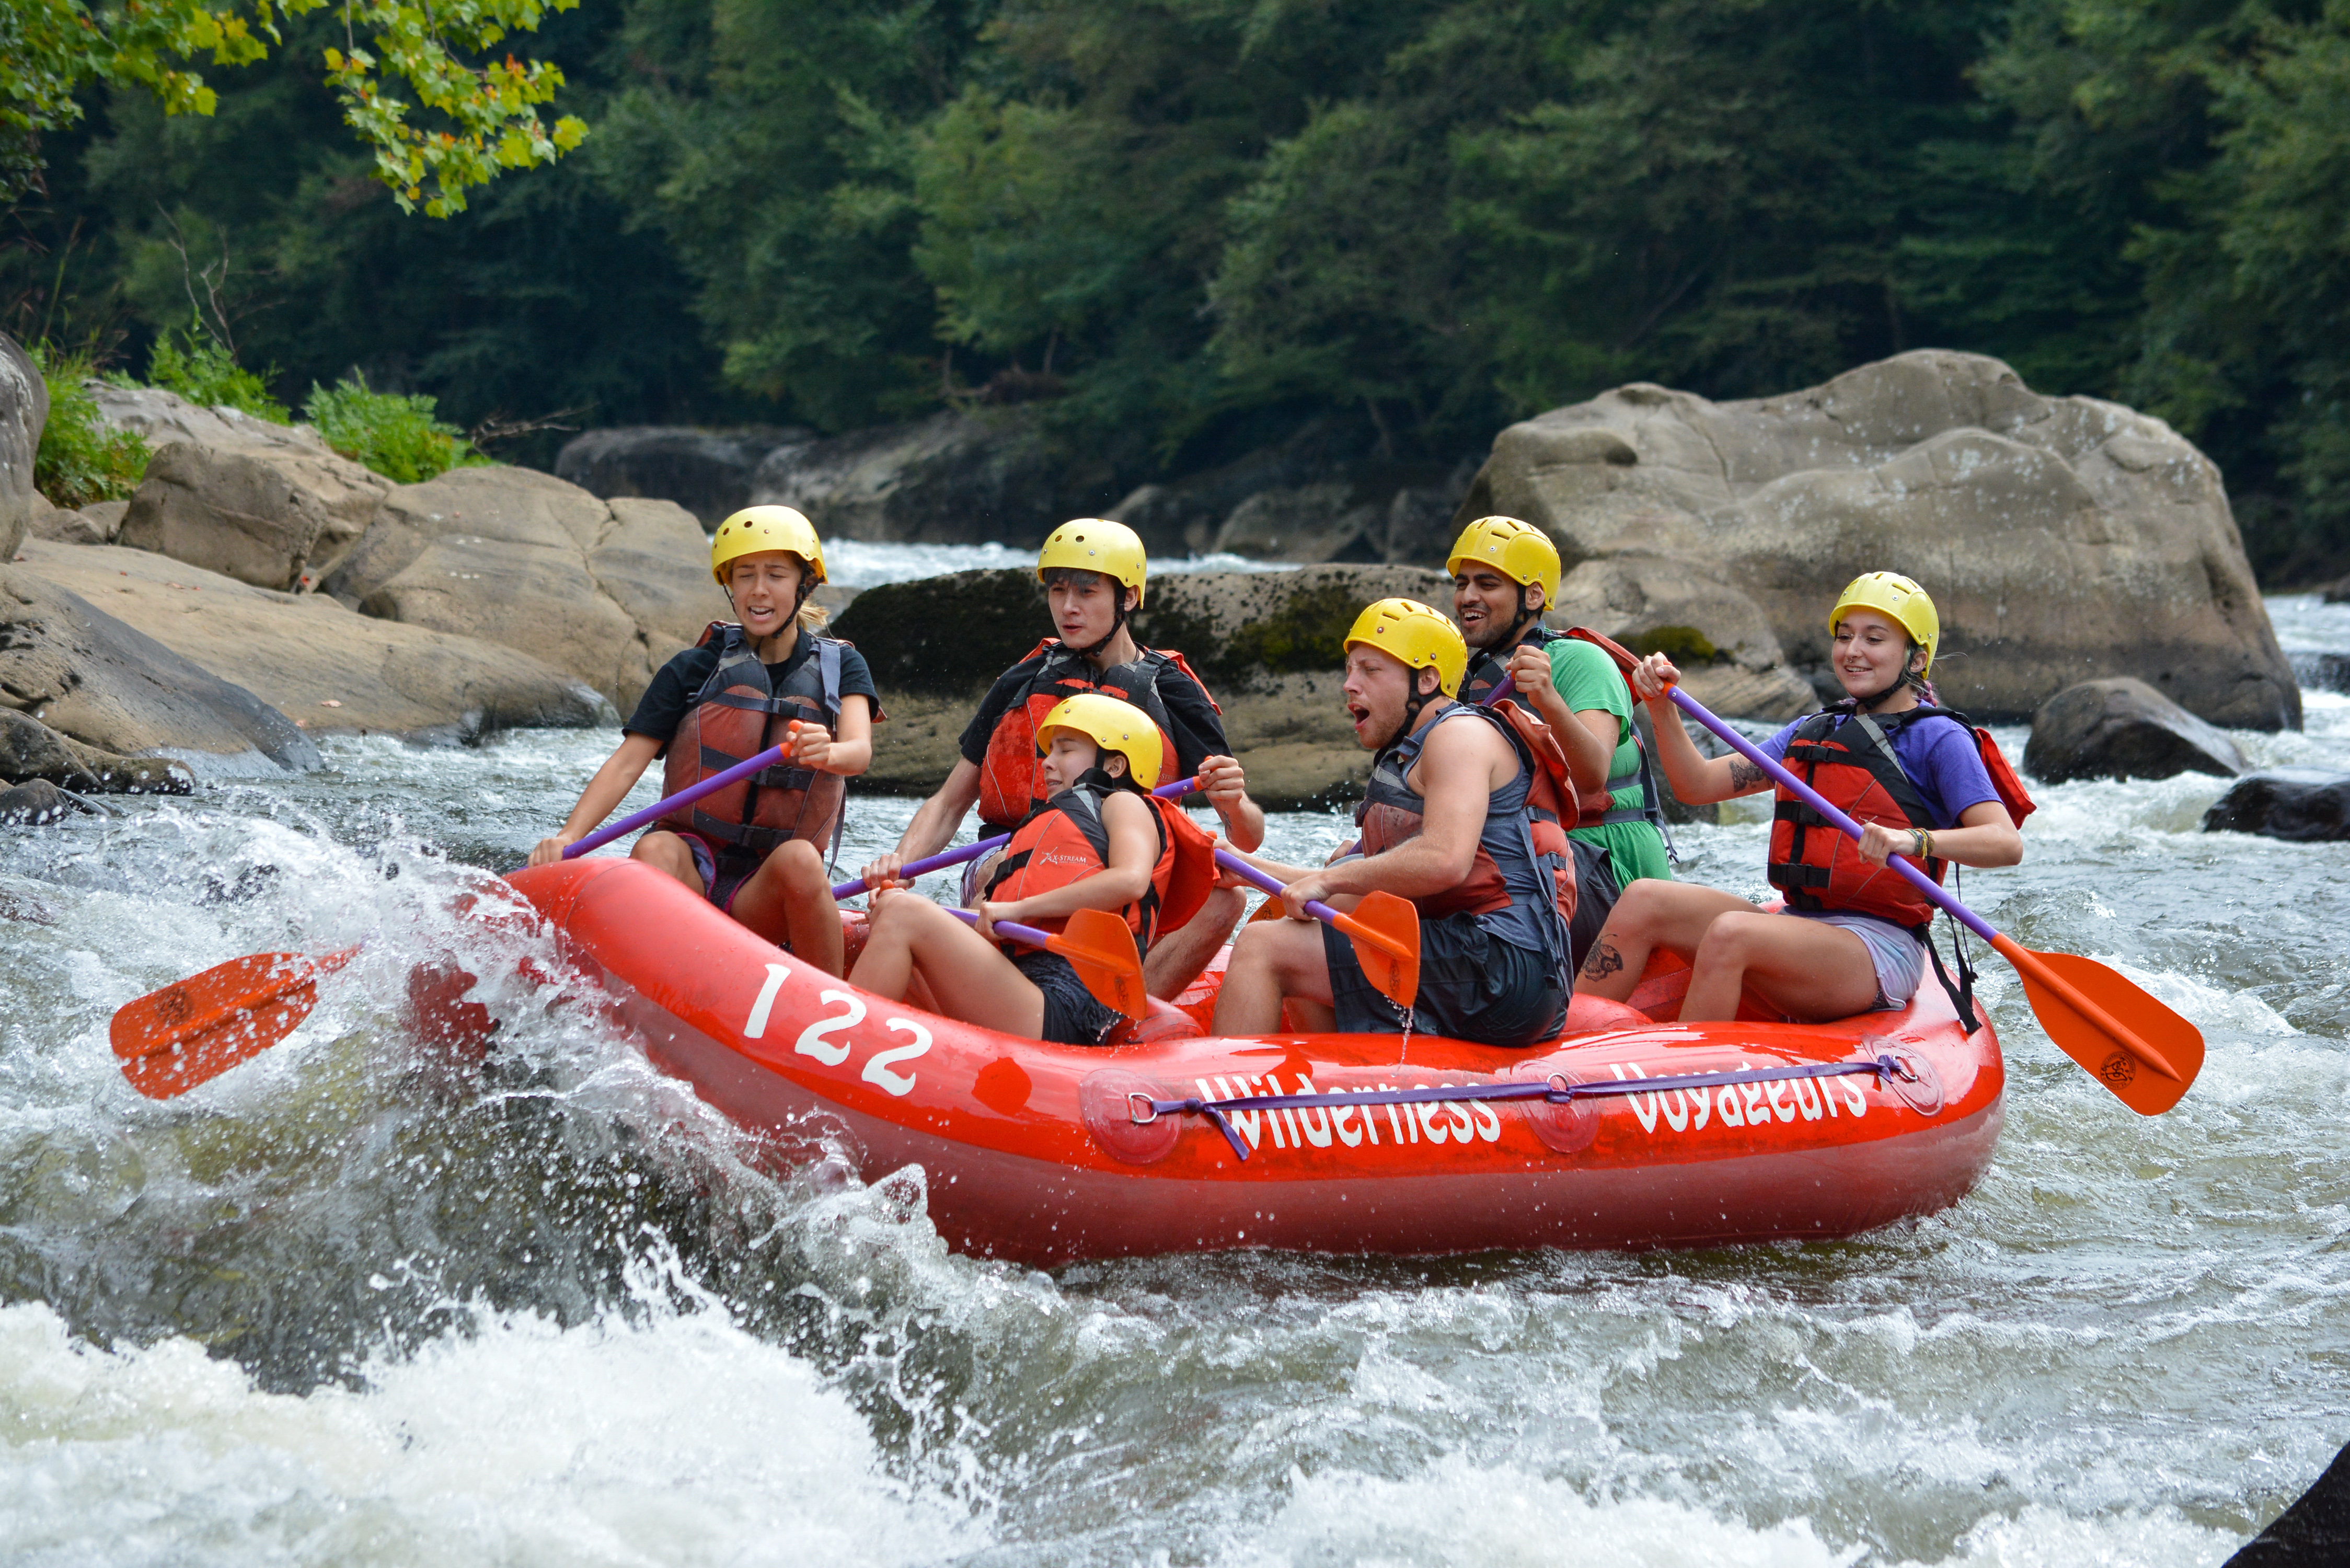 outdoor initiatives club on a whitewater rafting trip